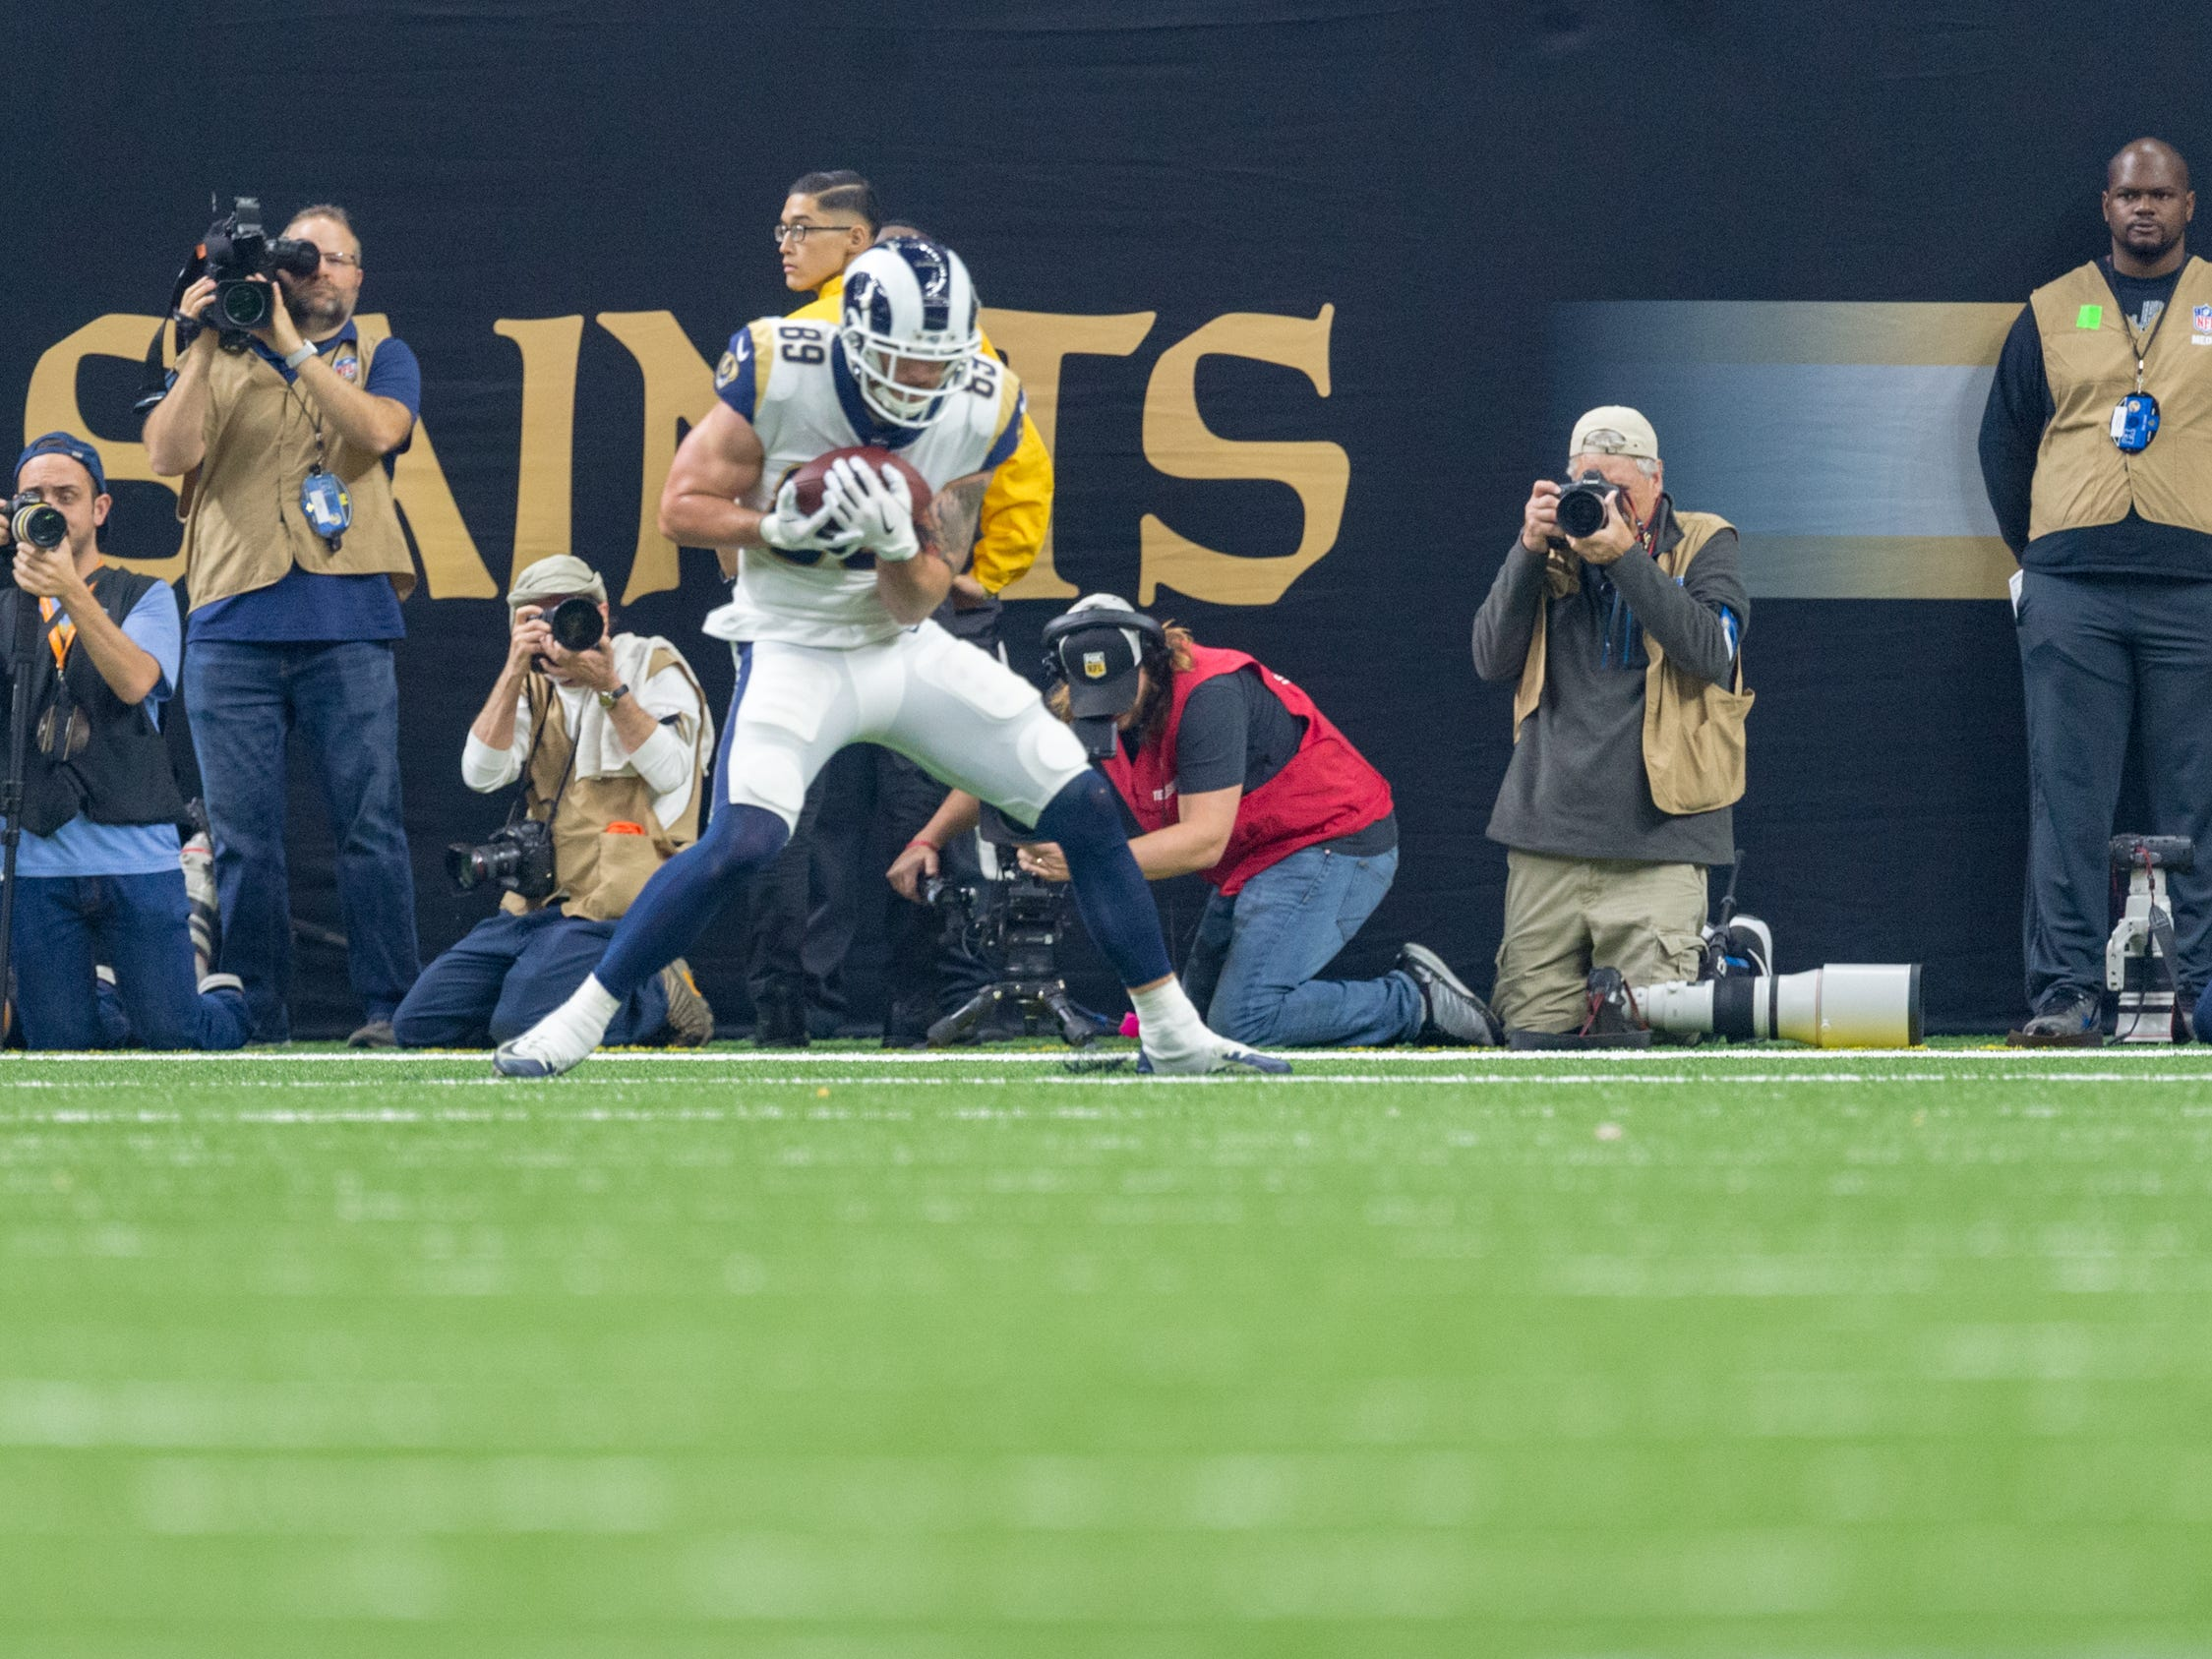 Rams Tyler Higbee scores a touchdown during the NFC Championship playoff football game between the New Orleans Saints and the Los Angeles Rams at the Mercedes-Benz Superdome in New Orleans. Sunday, Jan. 20, 2019.